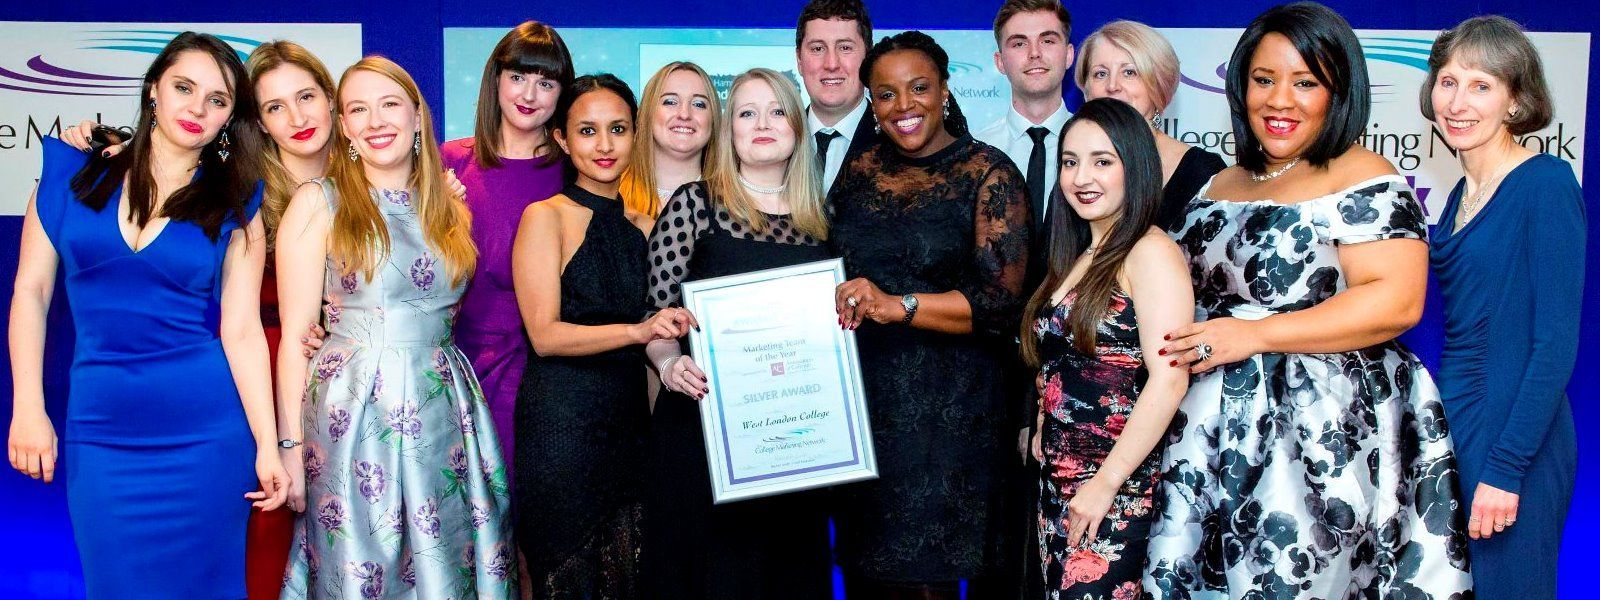 FE First Awards 2017, College Marketing Network, Marketing Team of the Year 2017 Silver, West London College